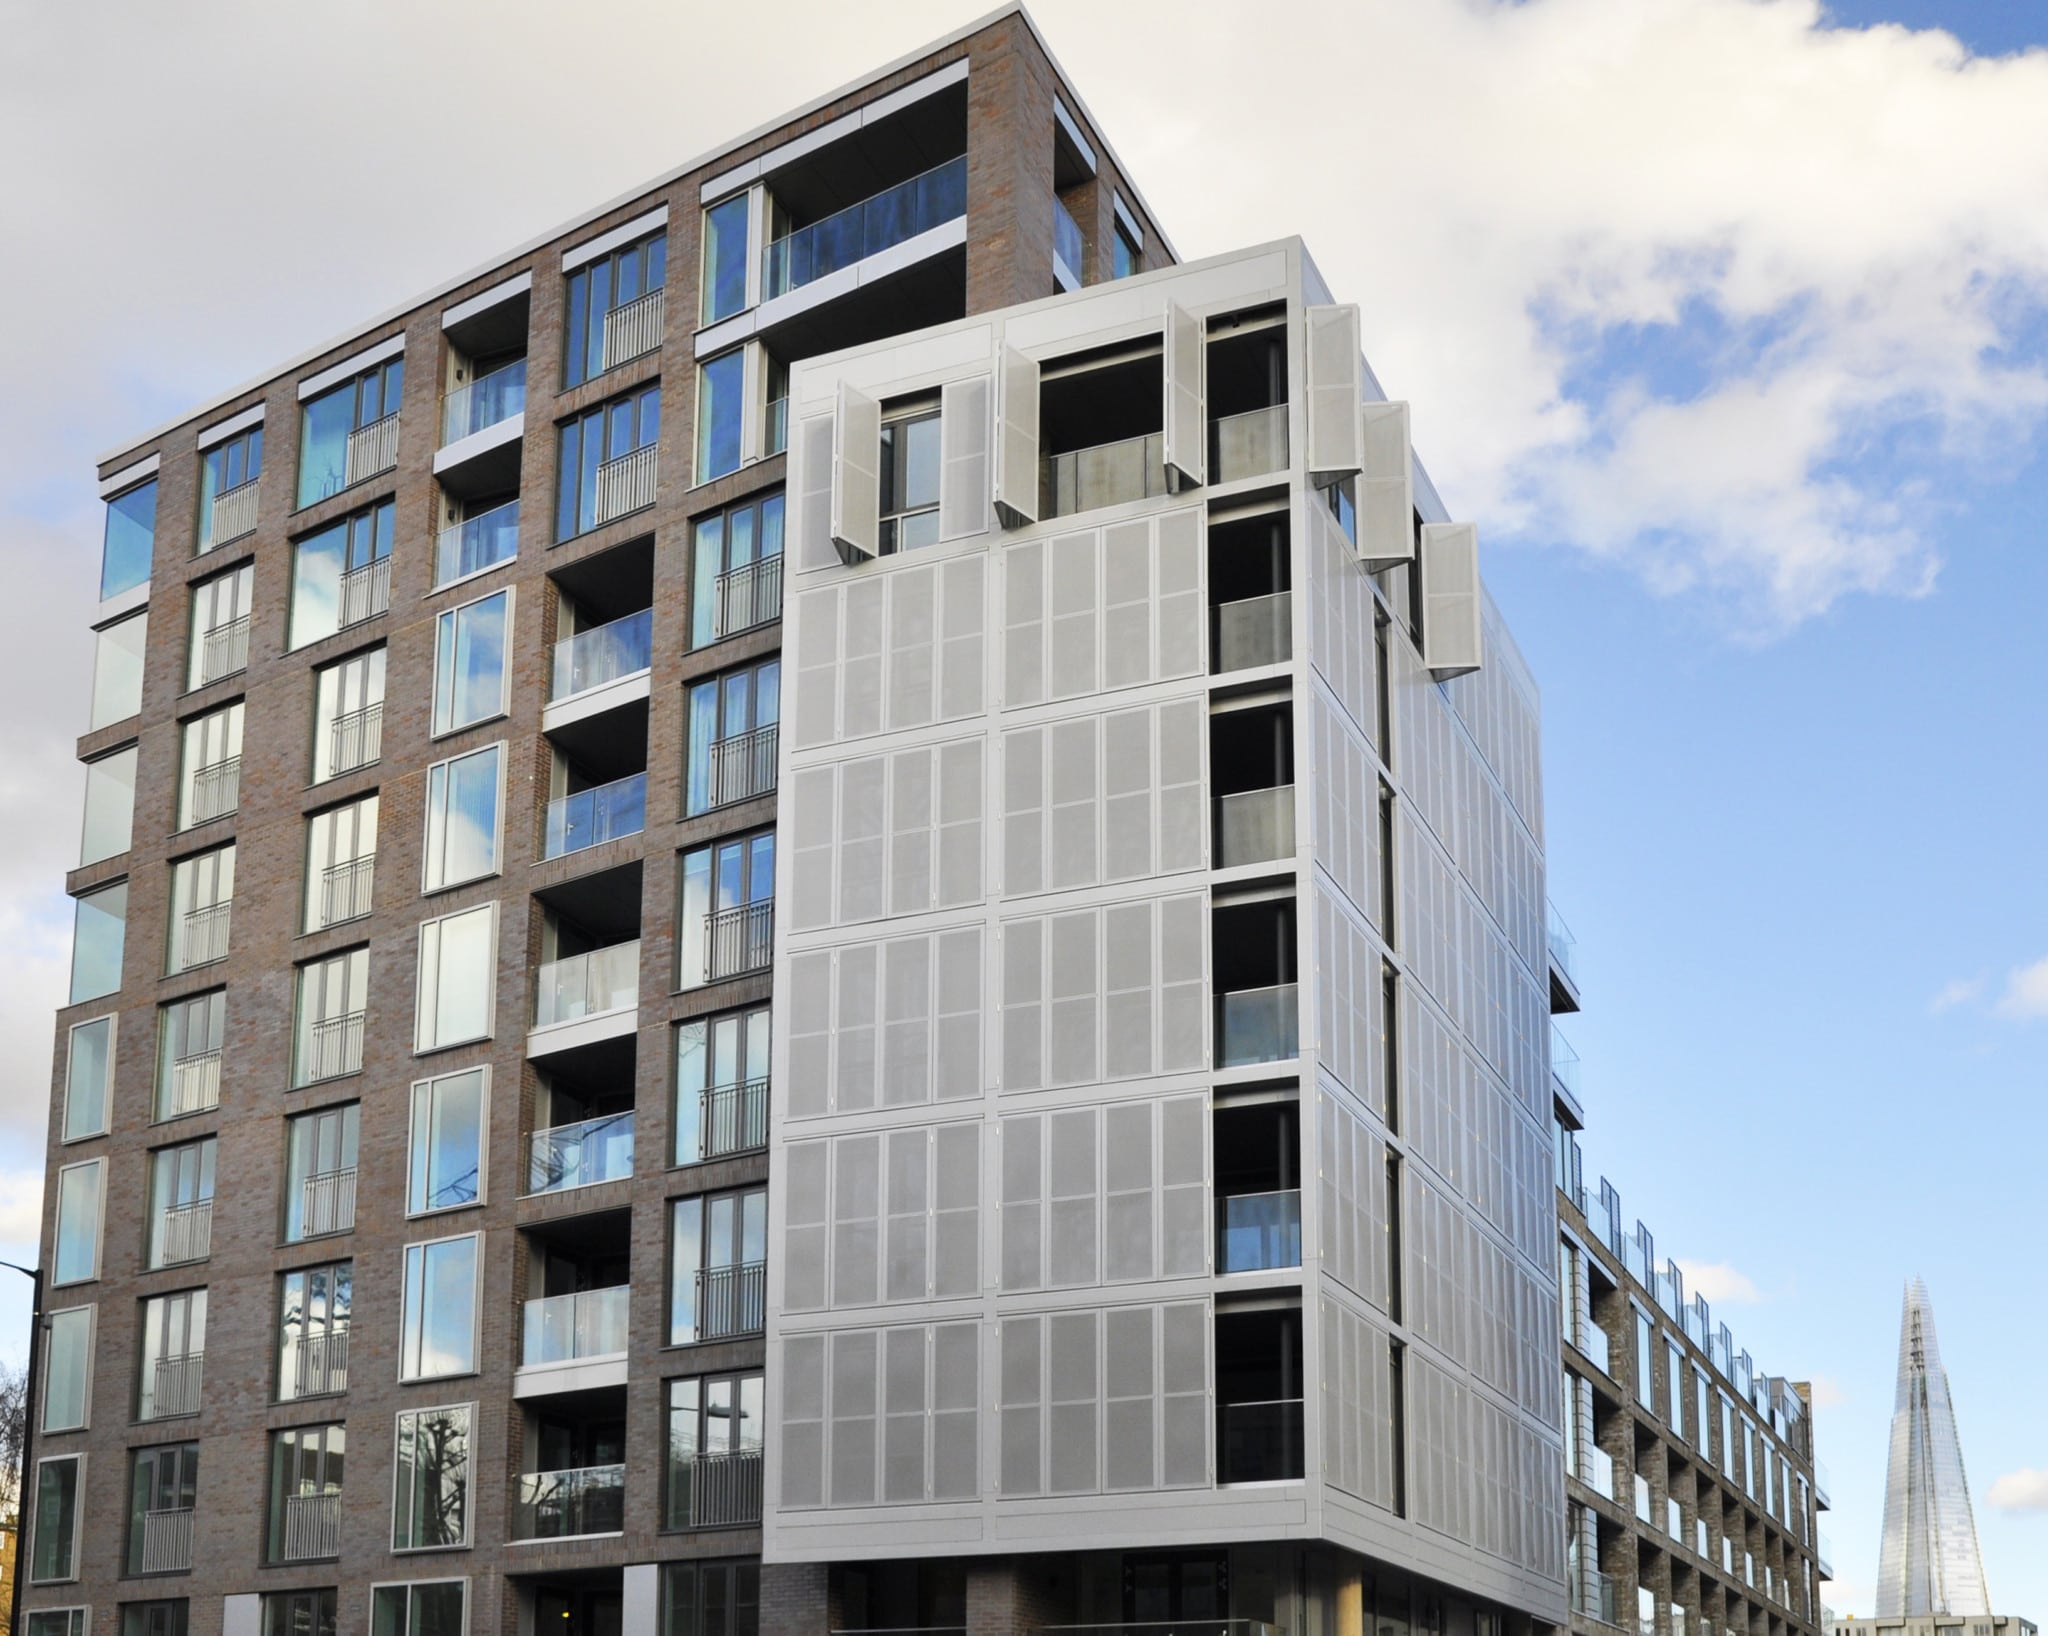 Blackfriars - Alucabond - TFC Rainscreen Cladding